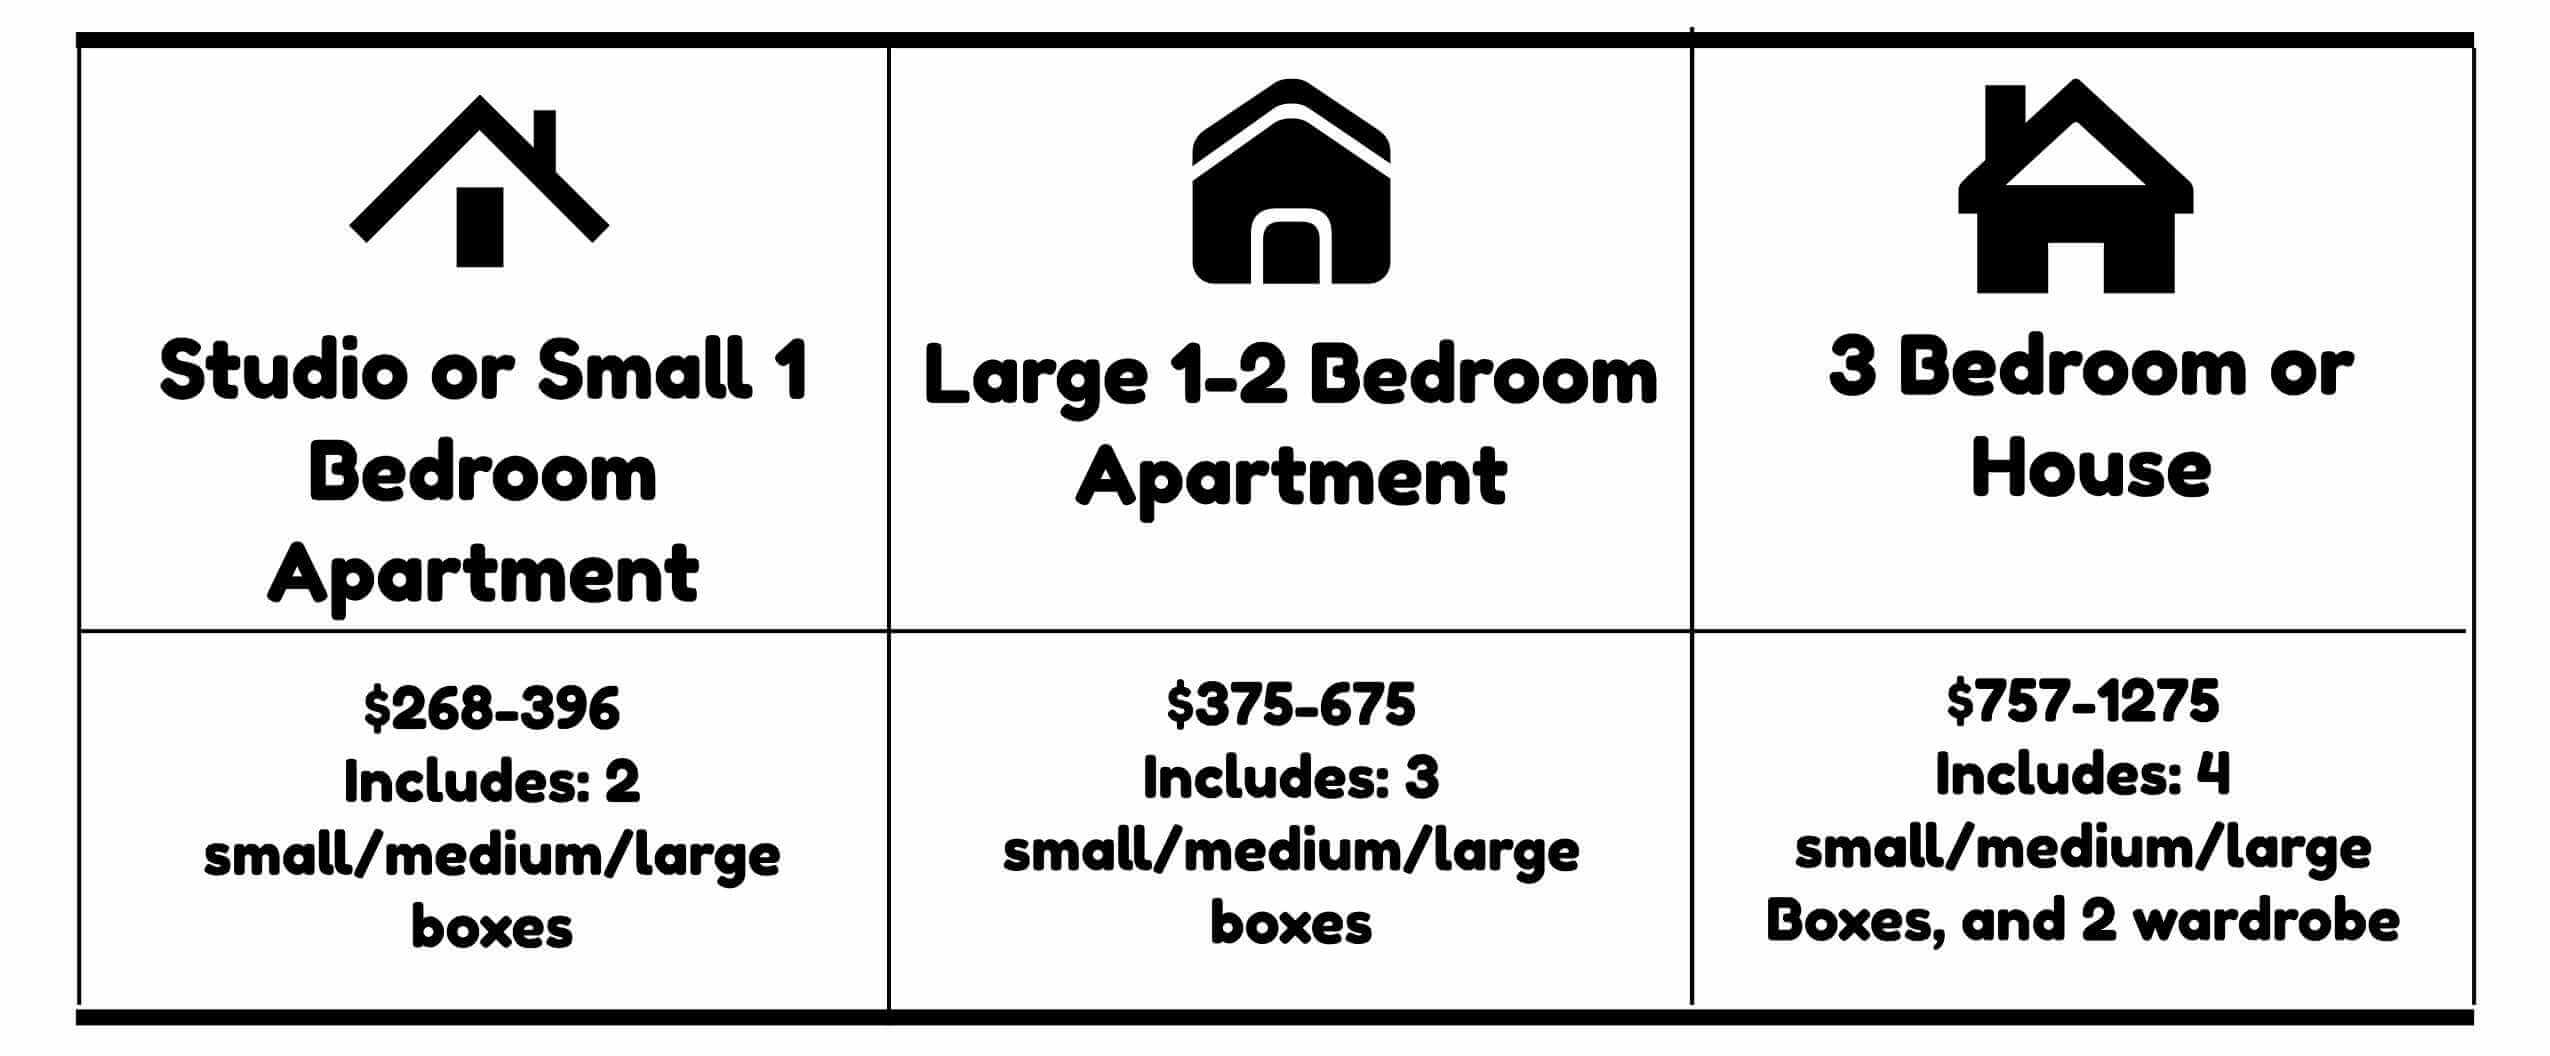 Average Moving Cost For 2 Bedroom Apartment